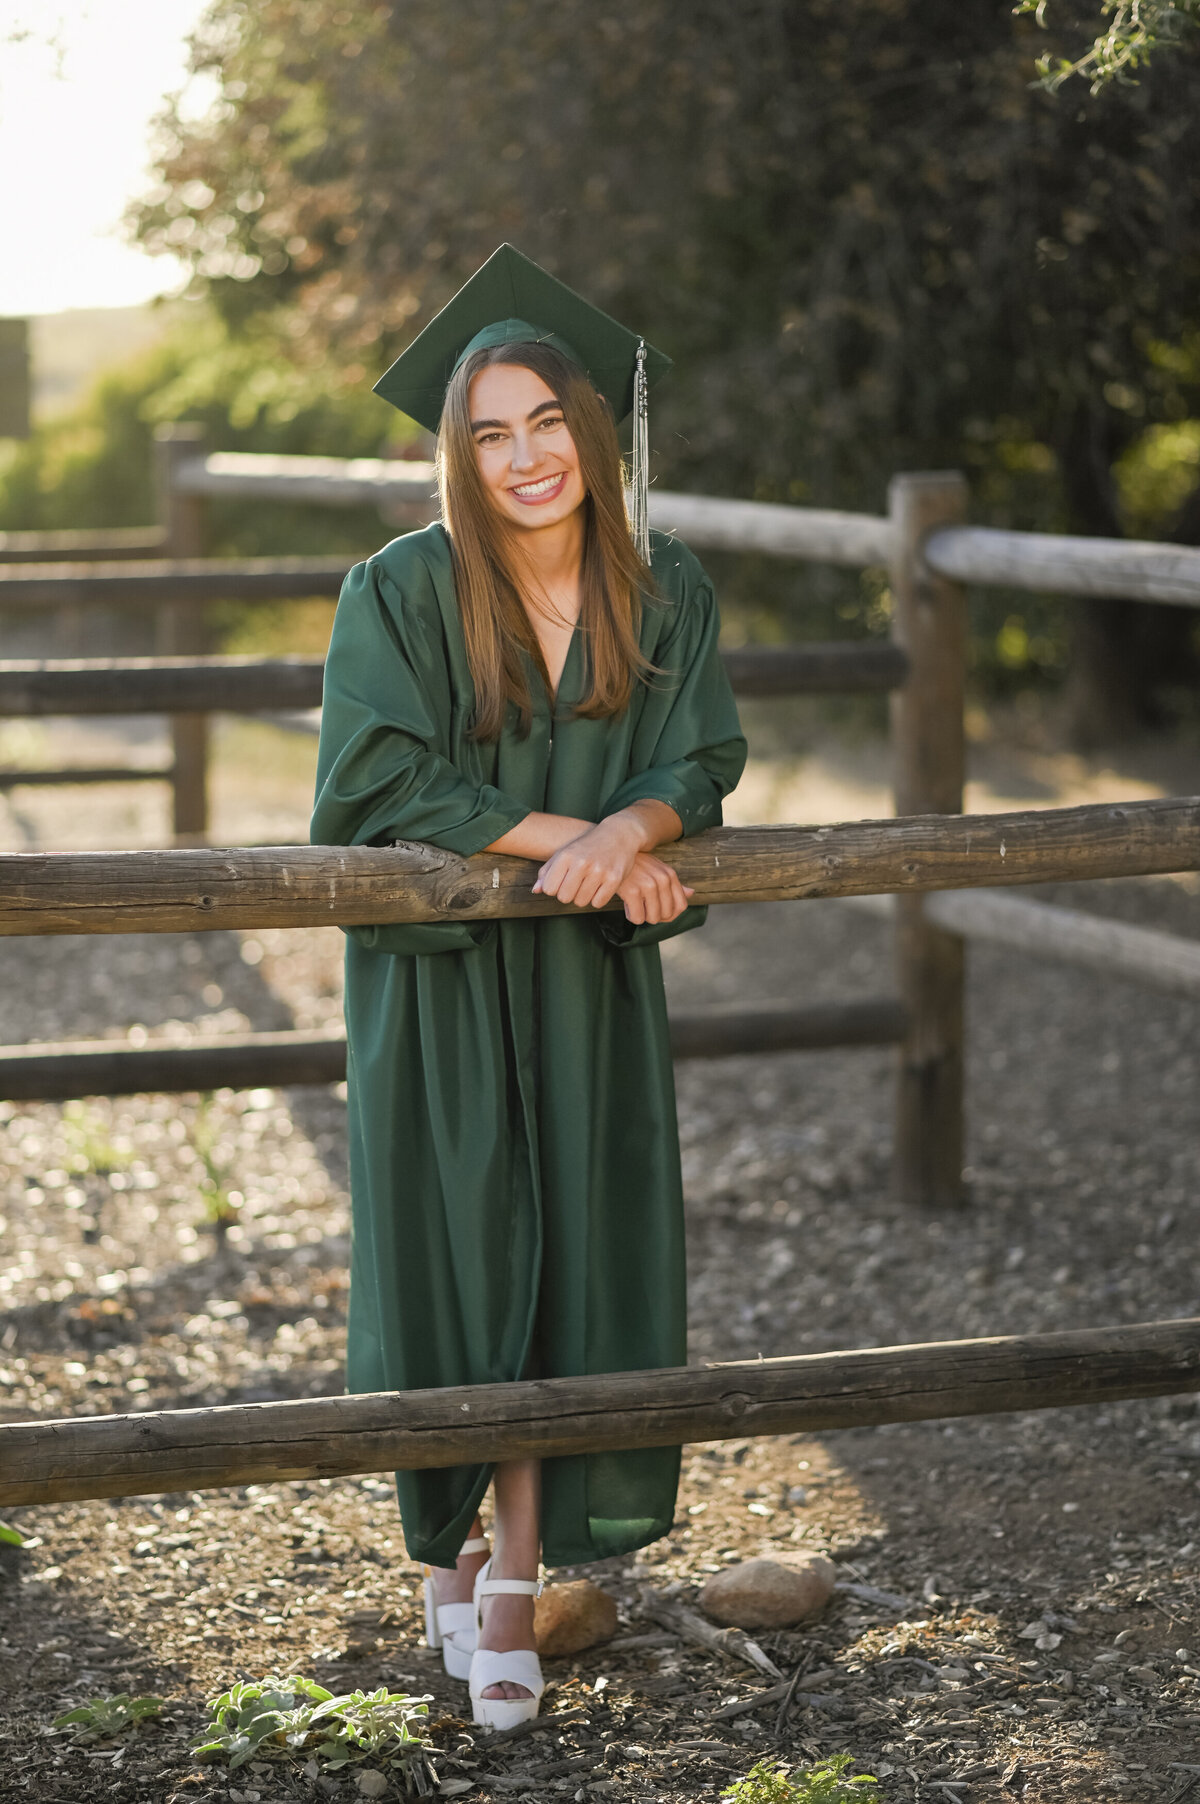 Poway-High-School-Senior-Photography-AB_003